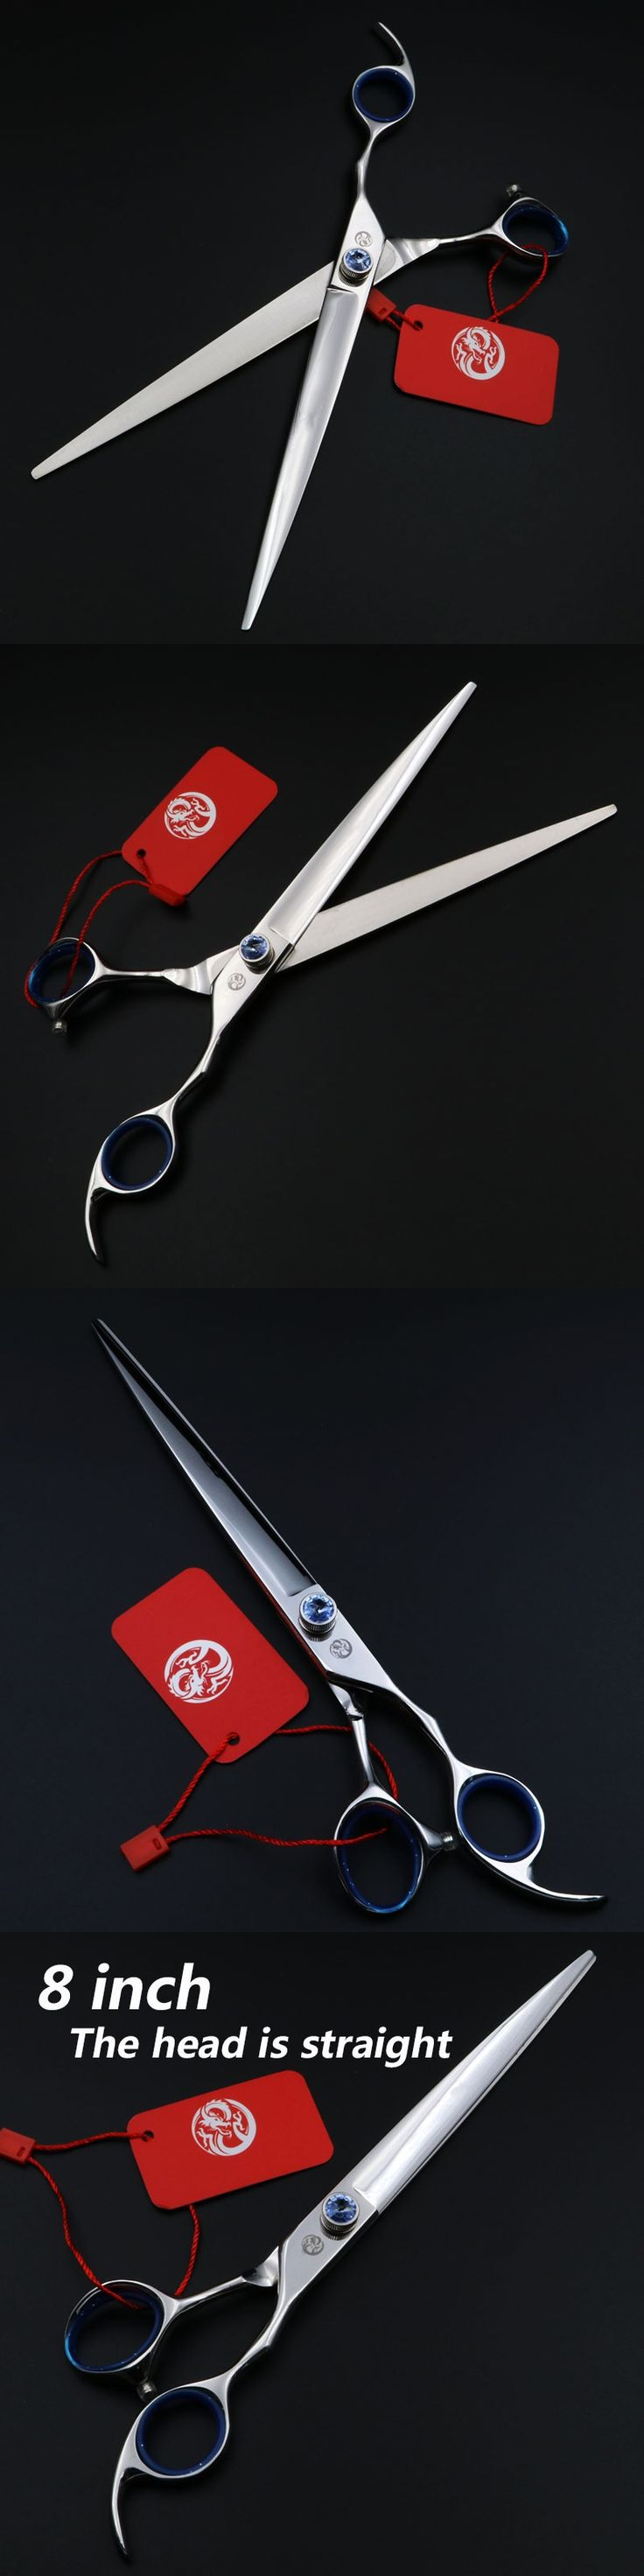 8 Inch Hair Scissors Professional pet scissors Hairdressing Barber hair Cutting shears salon